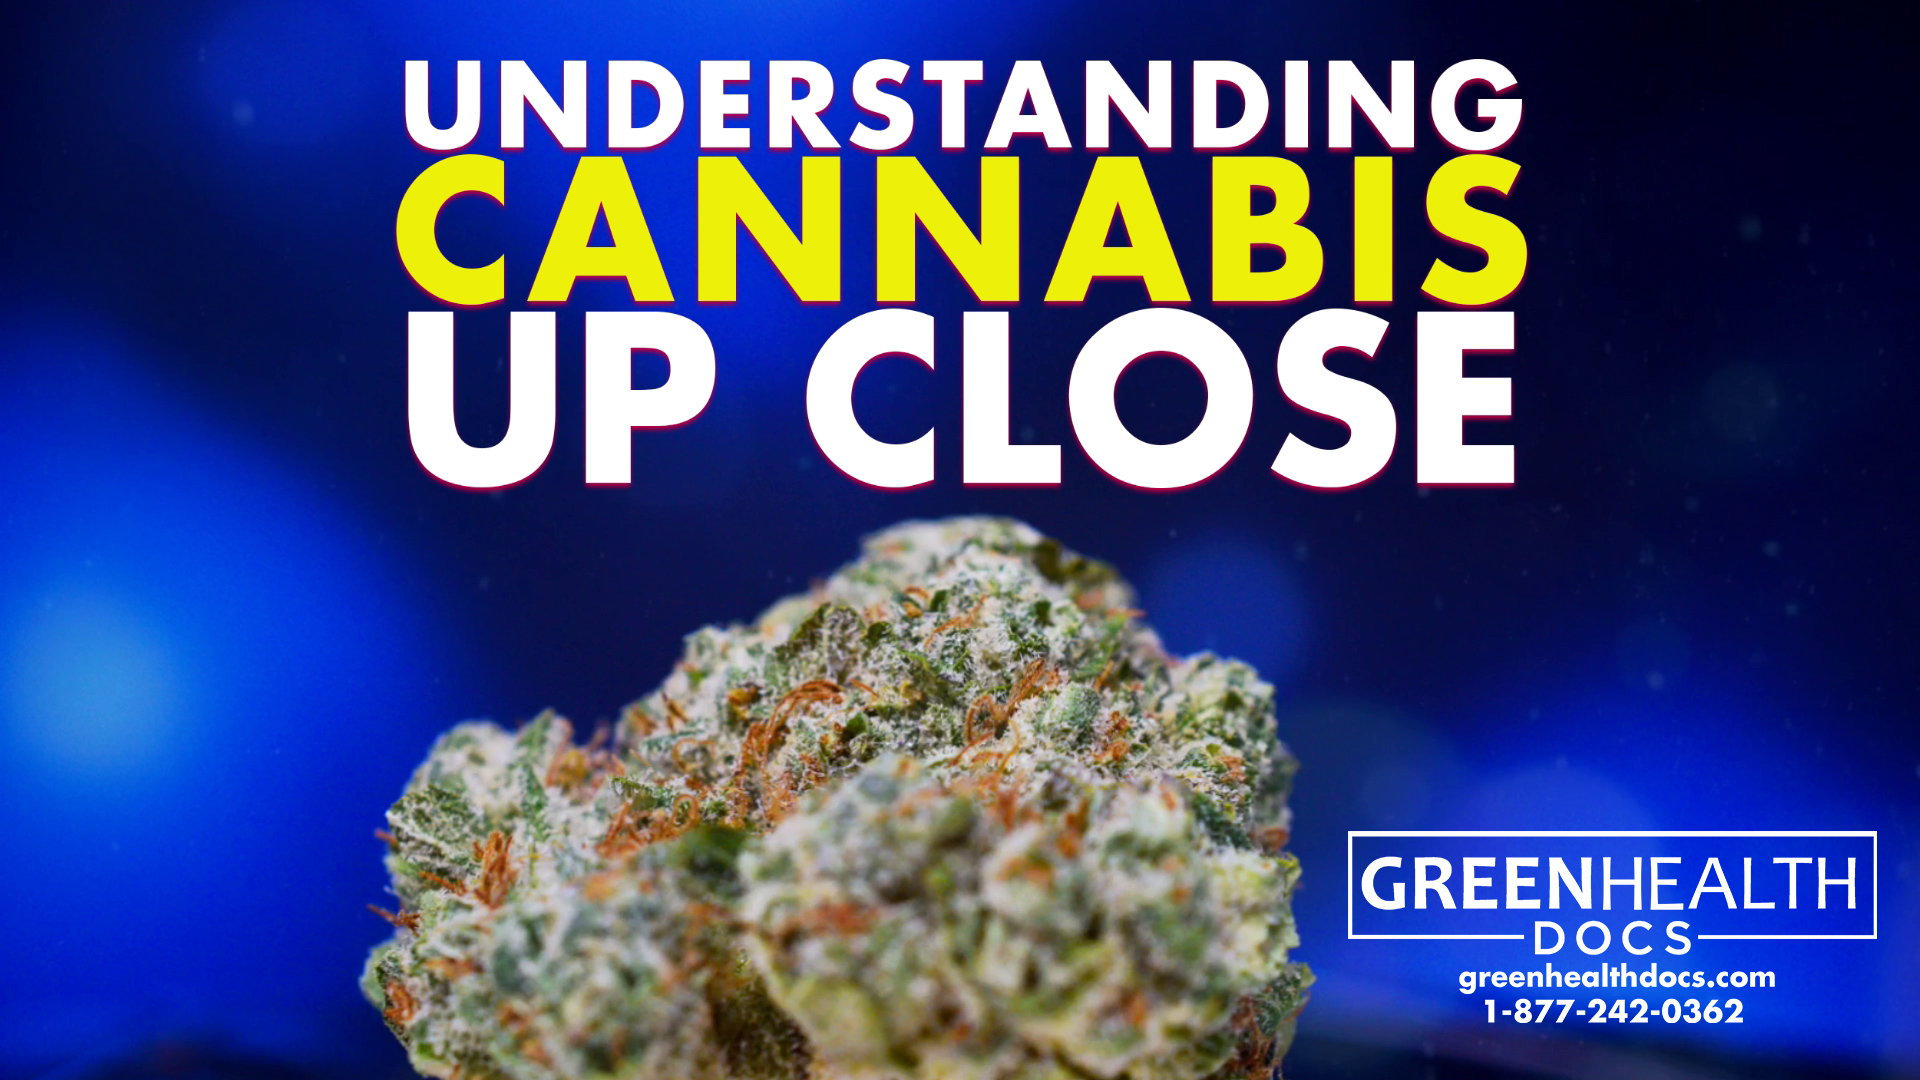 understanding cannabis up close